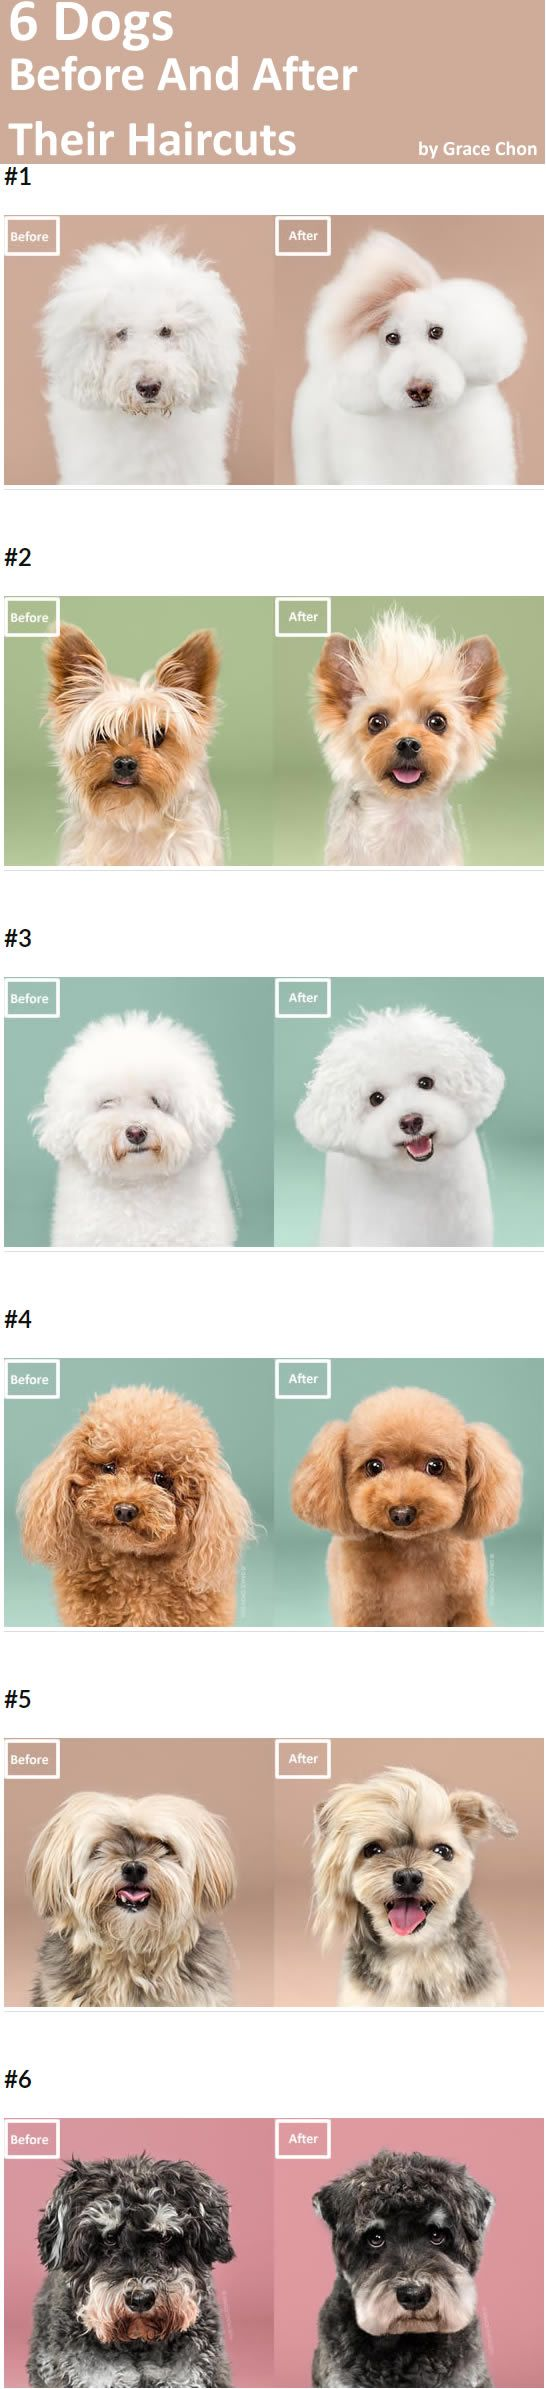 Animal photographer Grace Chon recently shot a photo series titled HAIRY.It's about extreme transformation (I mean, from hairy to cute) of several dogs before and after their haircuts. Most of them are groomed as Japanese style. Check Grace Chon's website to get more cute photos of dog haircuts.